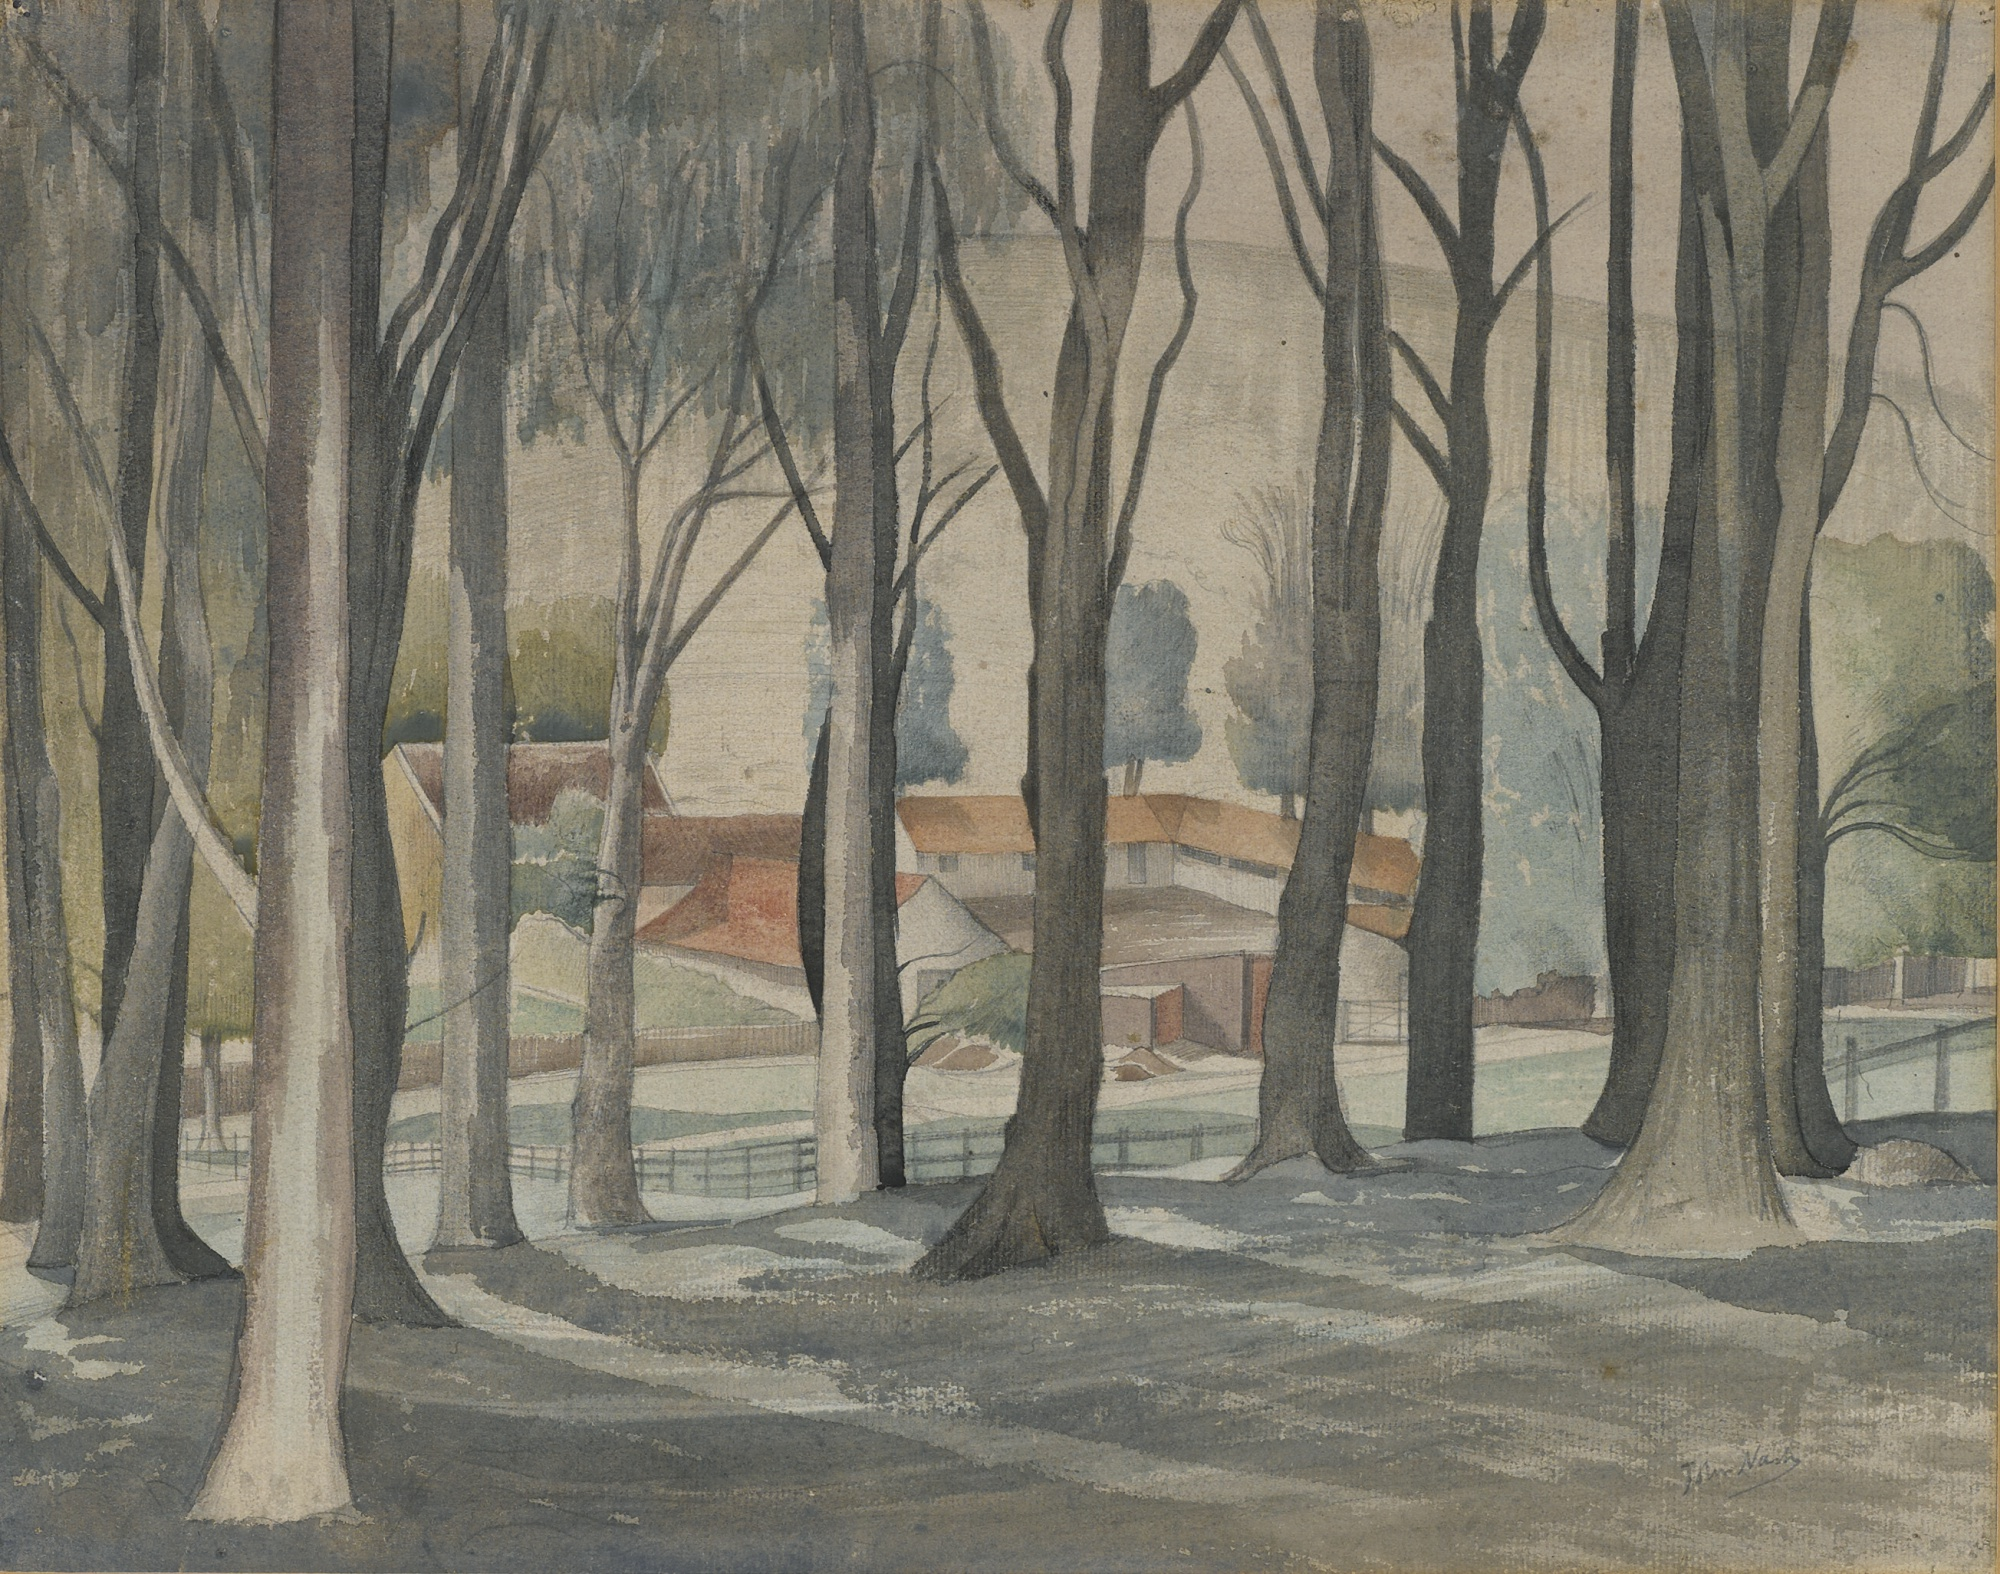 John Nash-Farm Through Trees-1923